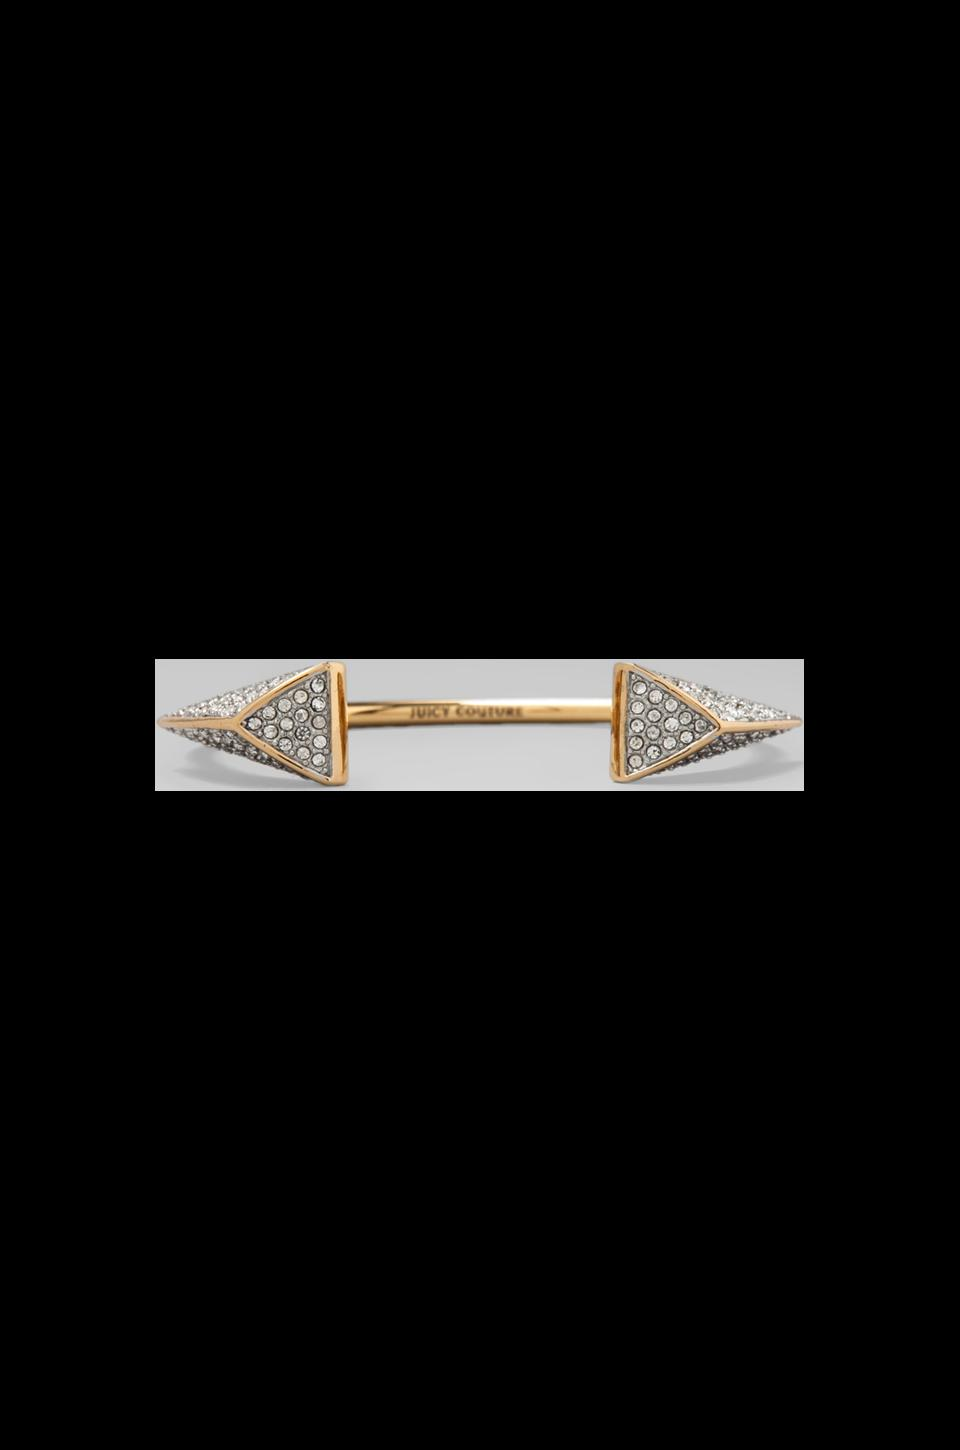 Juicy Couture Pave Triangle Skinny Bangle in Gold